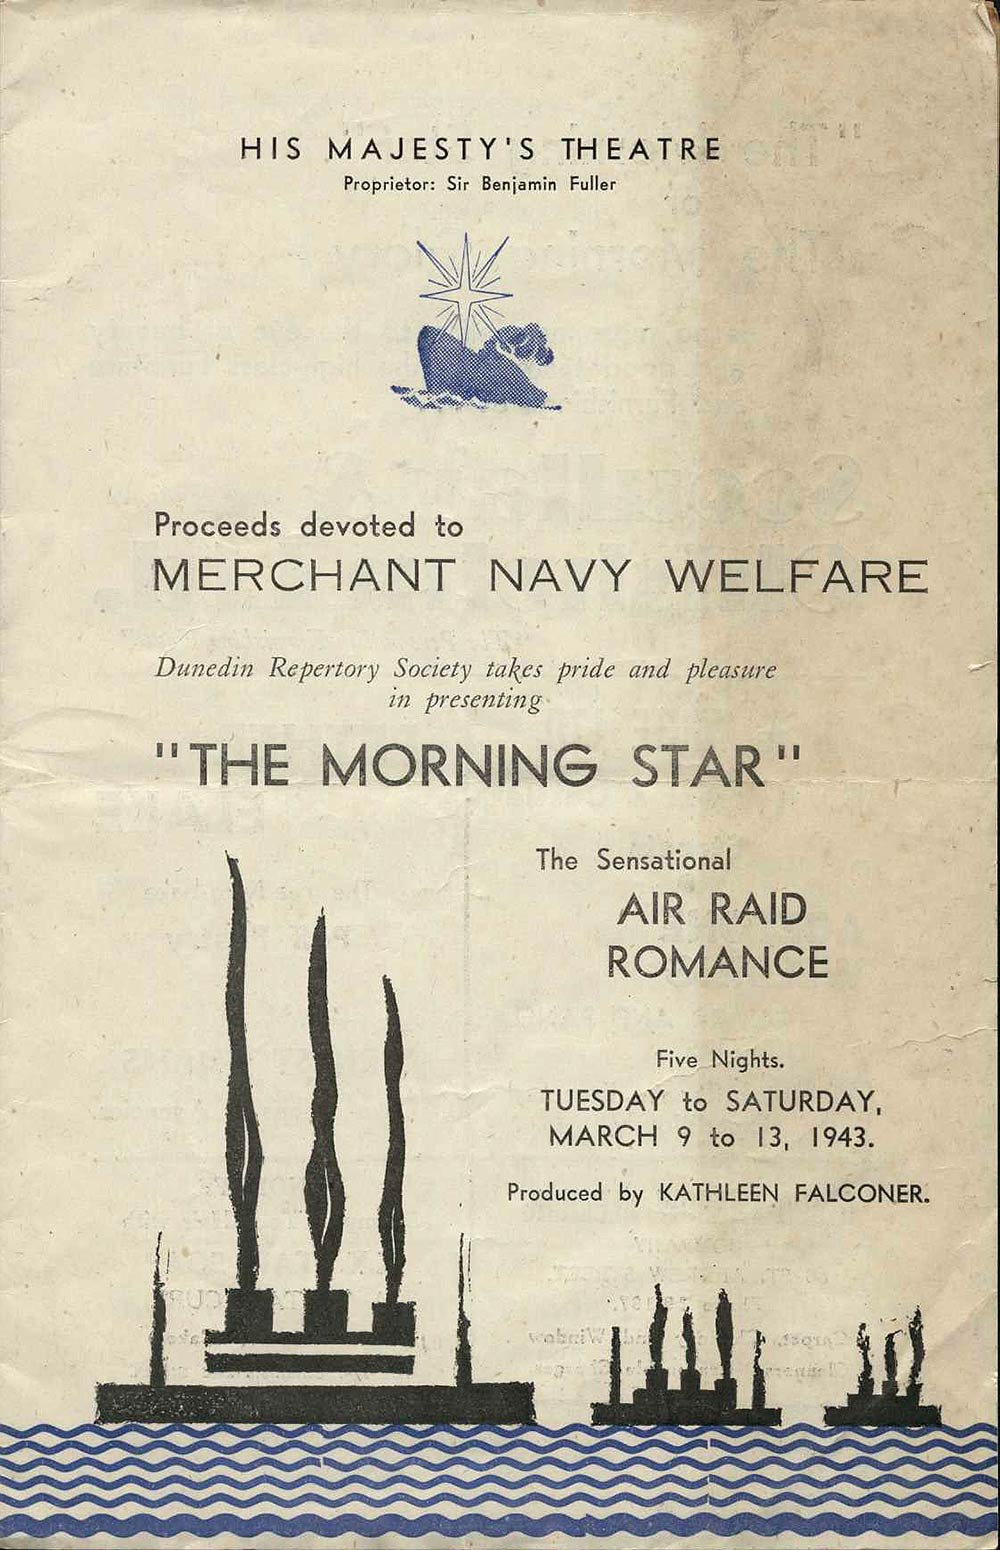 <em>The morning star</em>. Emlyn Williams. (Dunedin Repertory Society). His Majesty's Theatre, Dunedin, Mar. 9-13, 1943.